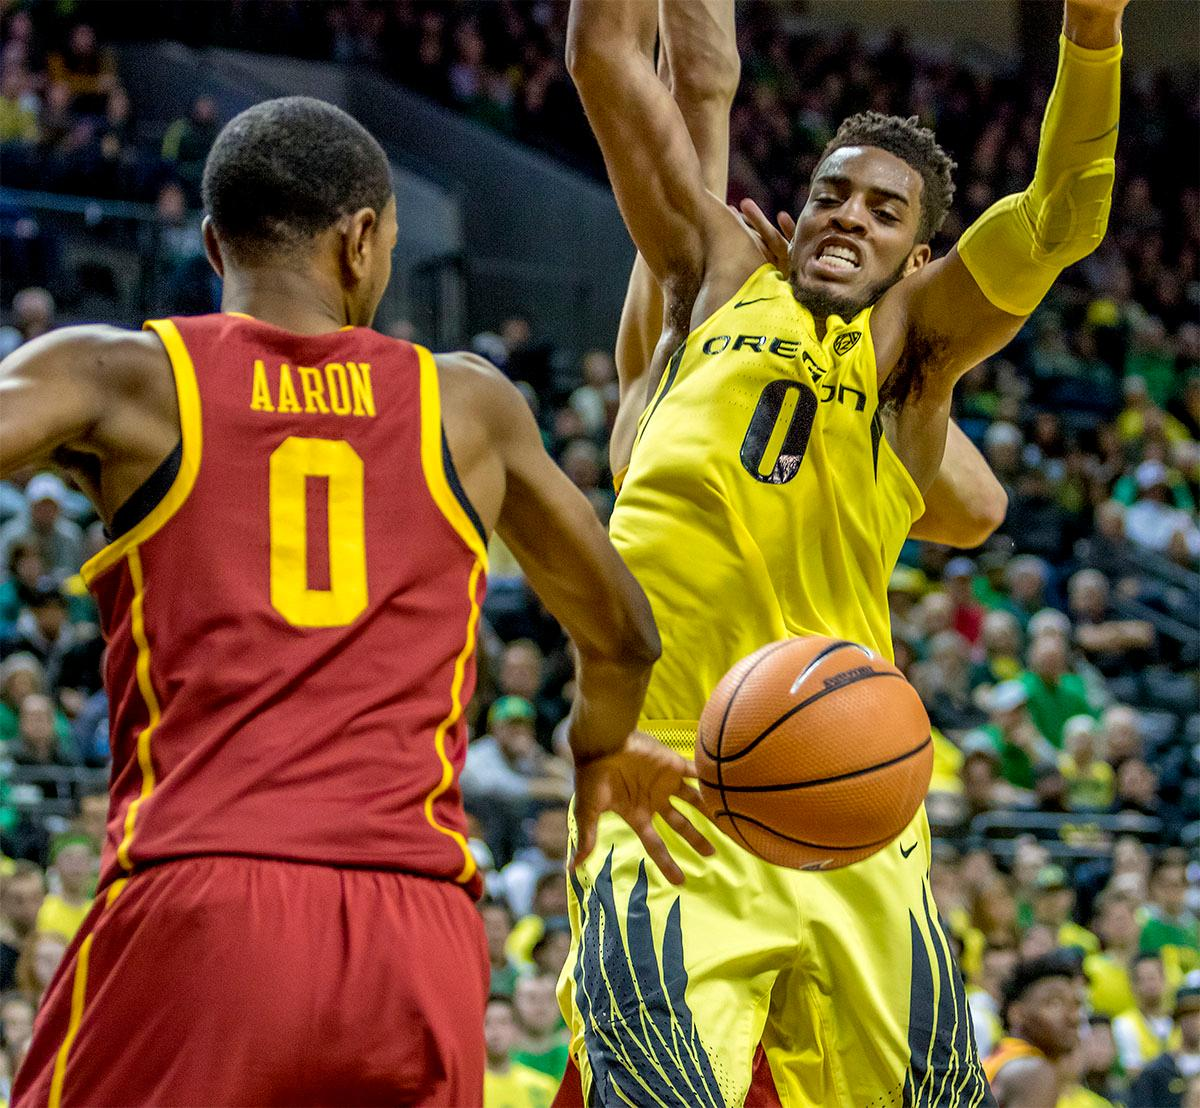 The Duck's Troy Brown Jr. (#0) attempts to make the rebound. The UO Ducks basketball team suffered a loss to the USC Trojans, 75-70, at Matthew Knight Arena on Thursday. Payton Pritchard lead the scoring with 18 points. The Ducks are now 2-4 in conference play and 12-7 overall. The Ducks will next play the UCLA at Matthew Knight Arena at 7:15 p.m. on Saturday, Jan. 20. Photo by August Frank, Oregon News Lab